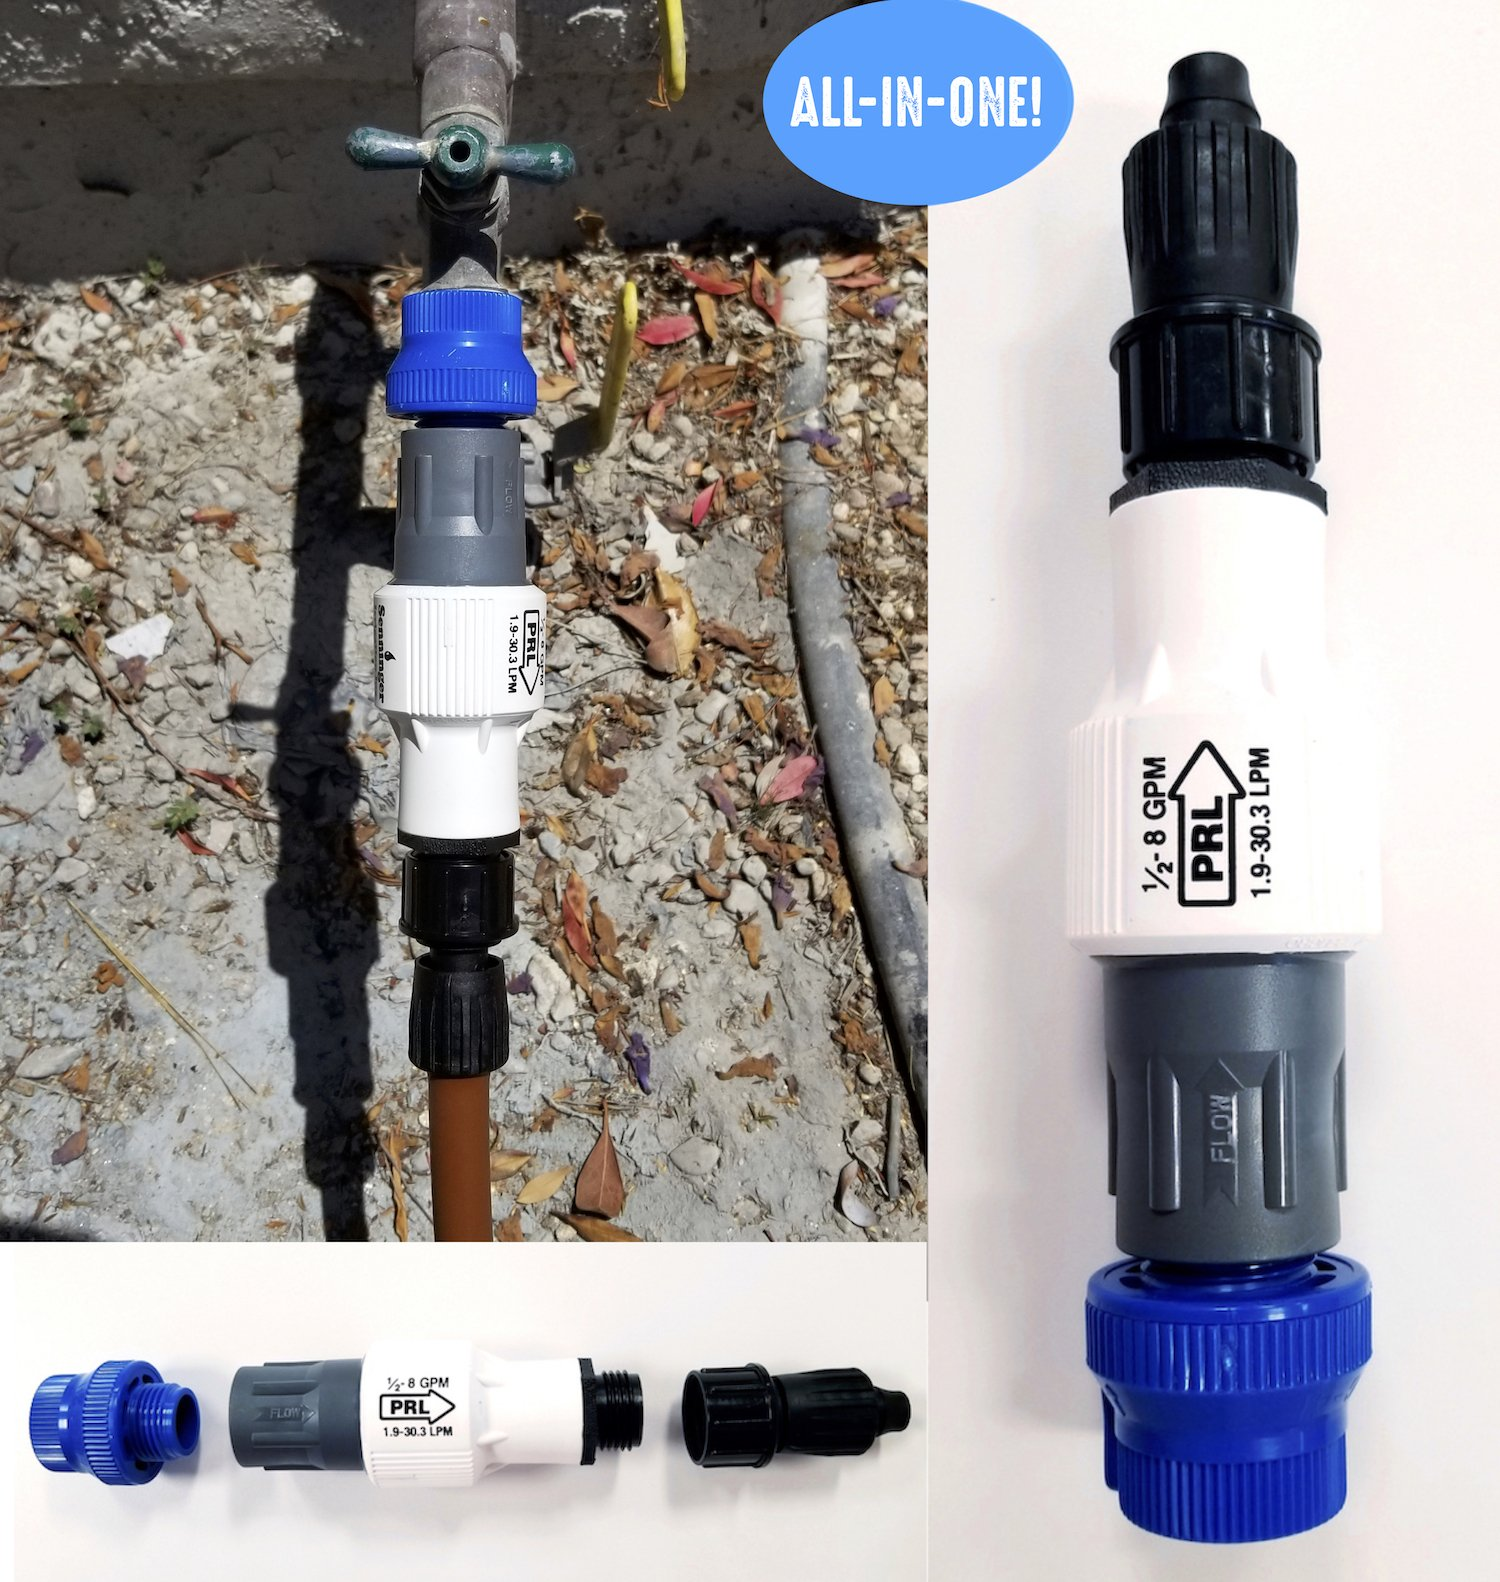 Drip Irrigation Faucet Adapter Kit: Connect Any 1/2'' Tubing to Faucet or Garden Hose - Includes Backflow Preventer with Filter, Pressure Regulator & Universal Adapter Coupling - No Assembly Required